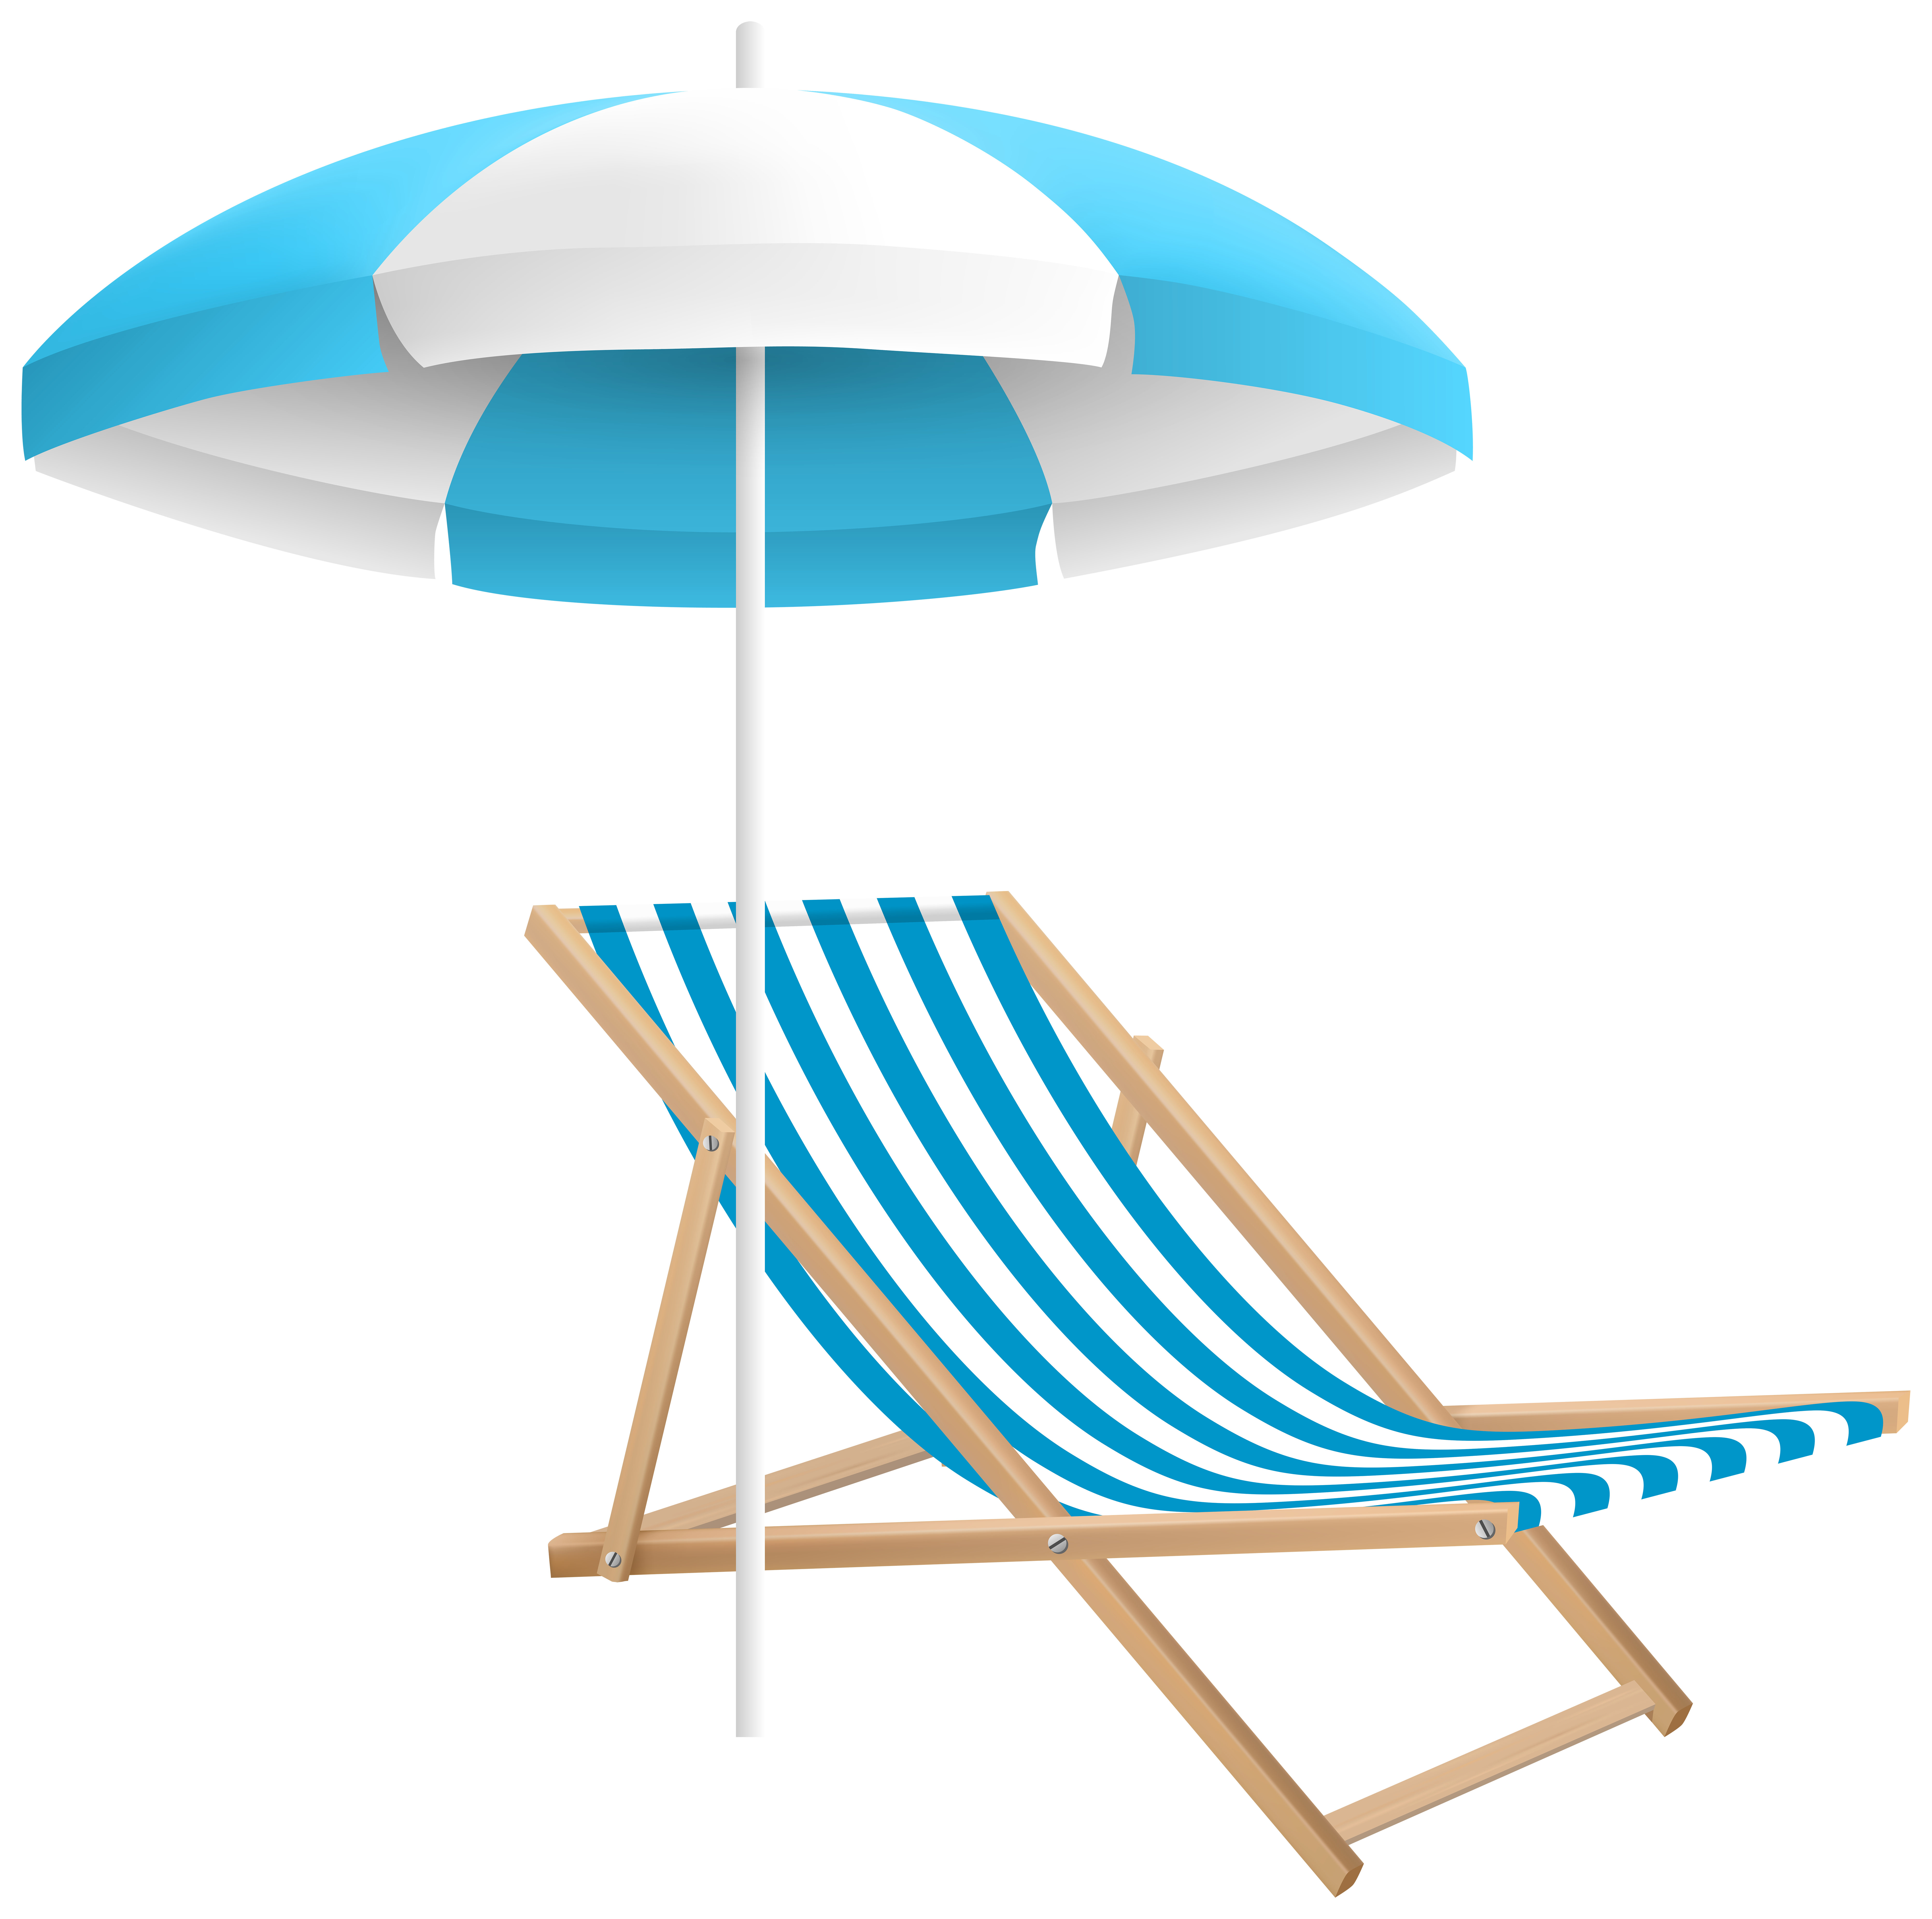 Beach chair clipart picture royalty free Beach Chair and Umbrella PNG Clip Art Transparent Image | Gallery ... picture royalty free